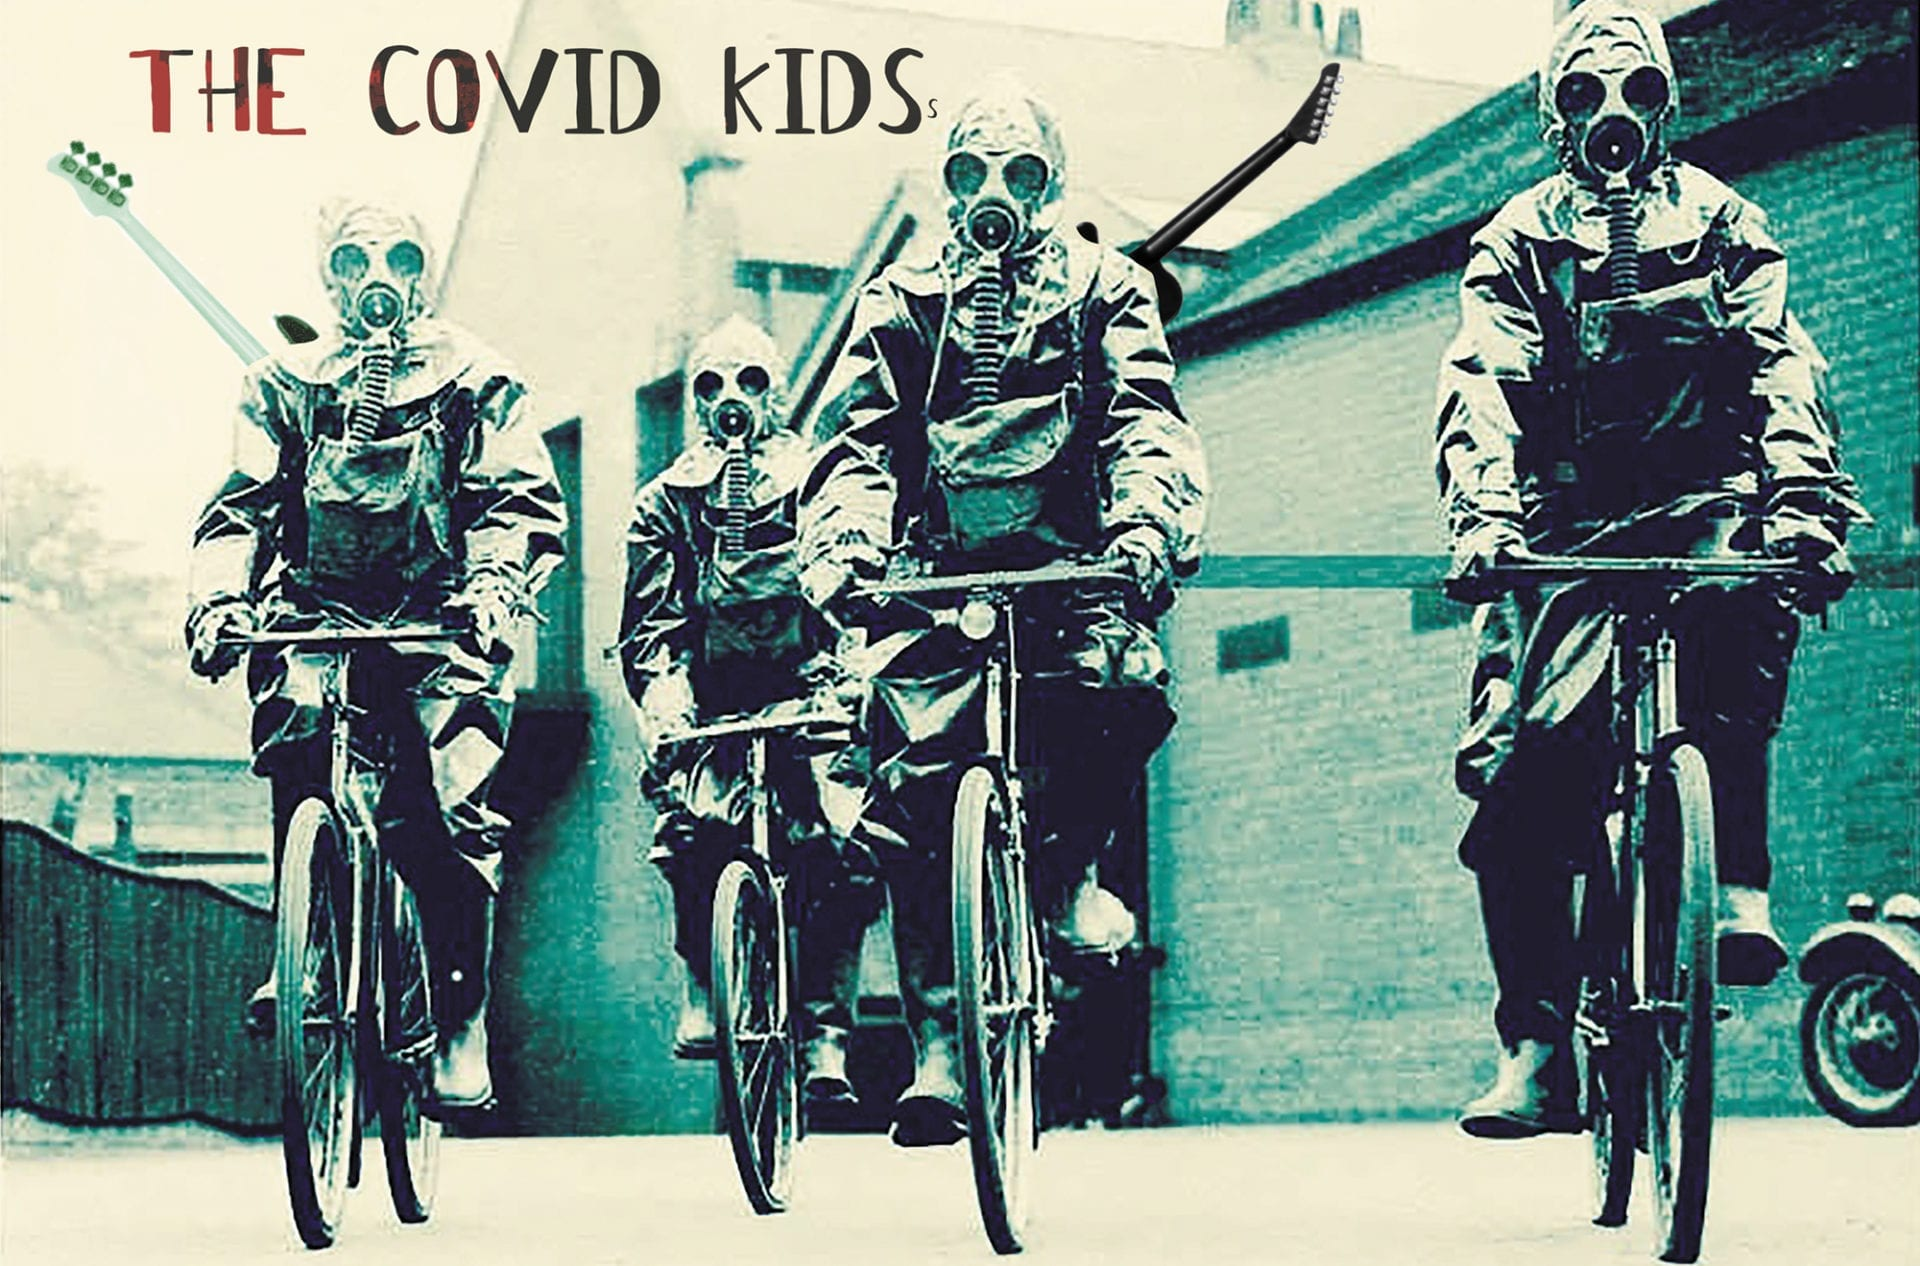 The Covid Kids